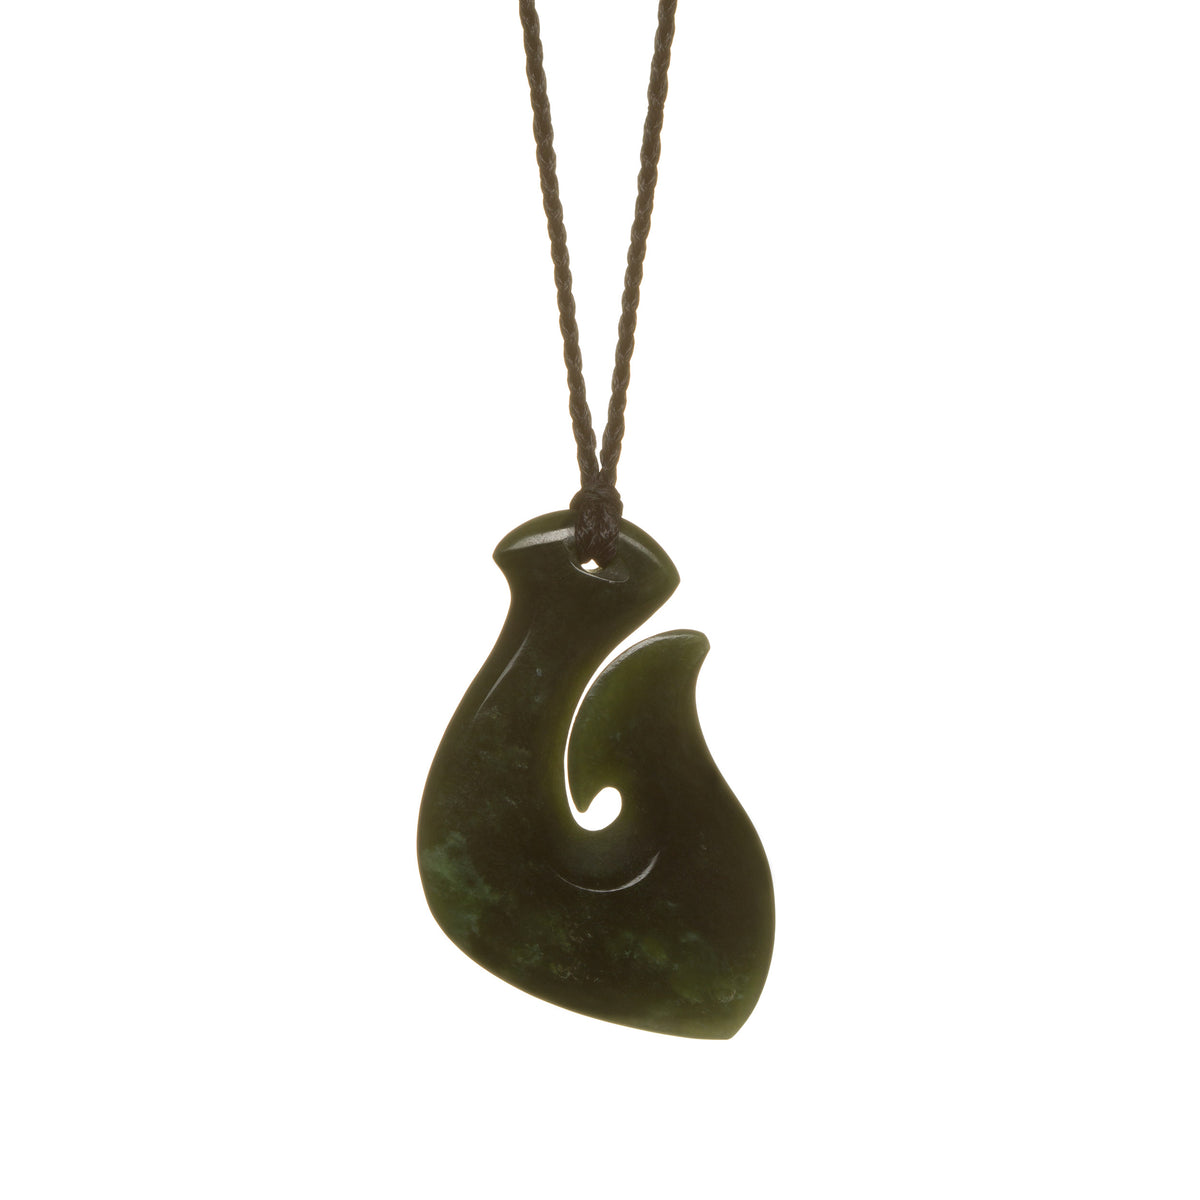 44mm x 30mm / New Zealand Pounamu // LUHOOK268P-A